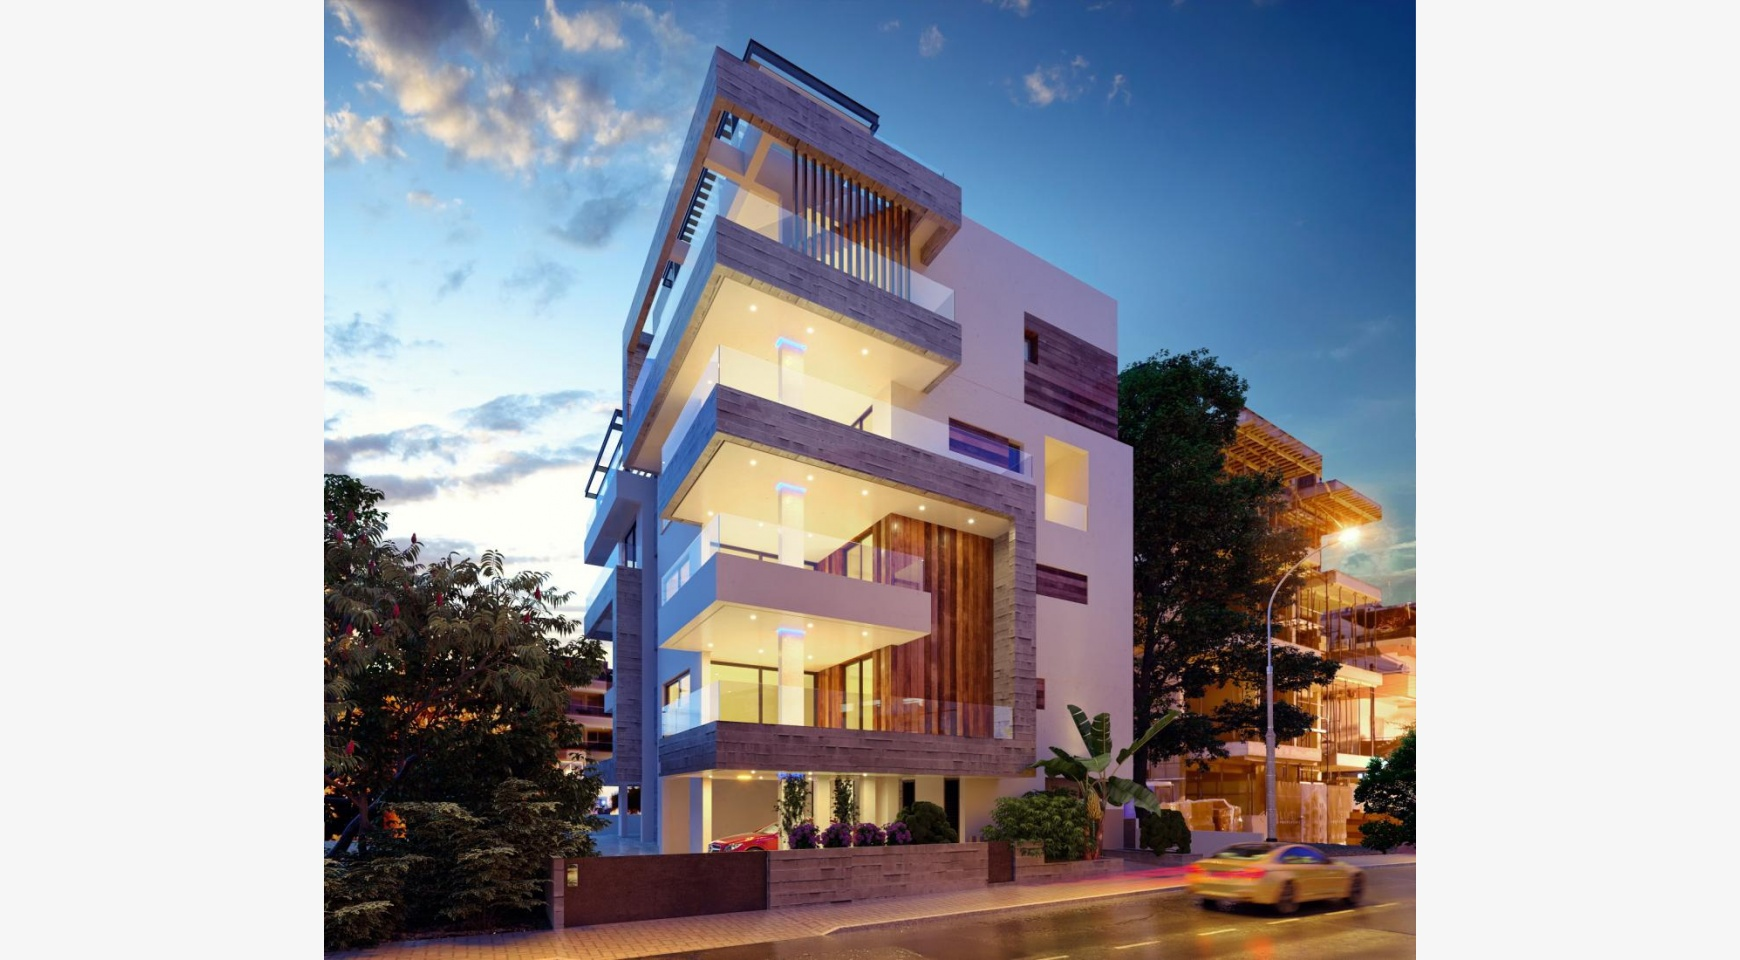 New 3 Bedroom Apartment in a Modern Building near the Sea - 1